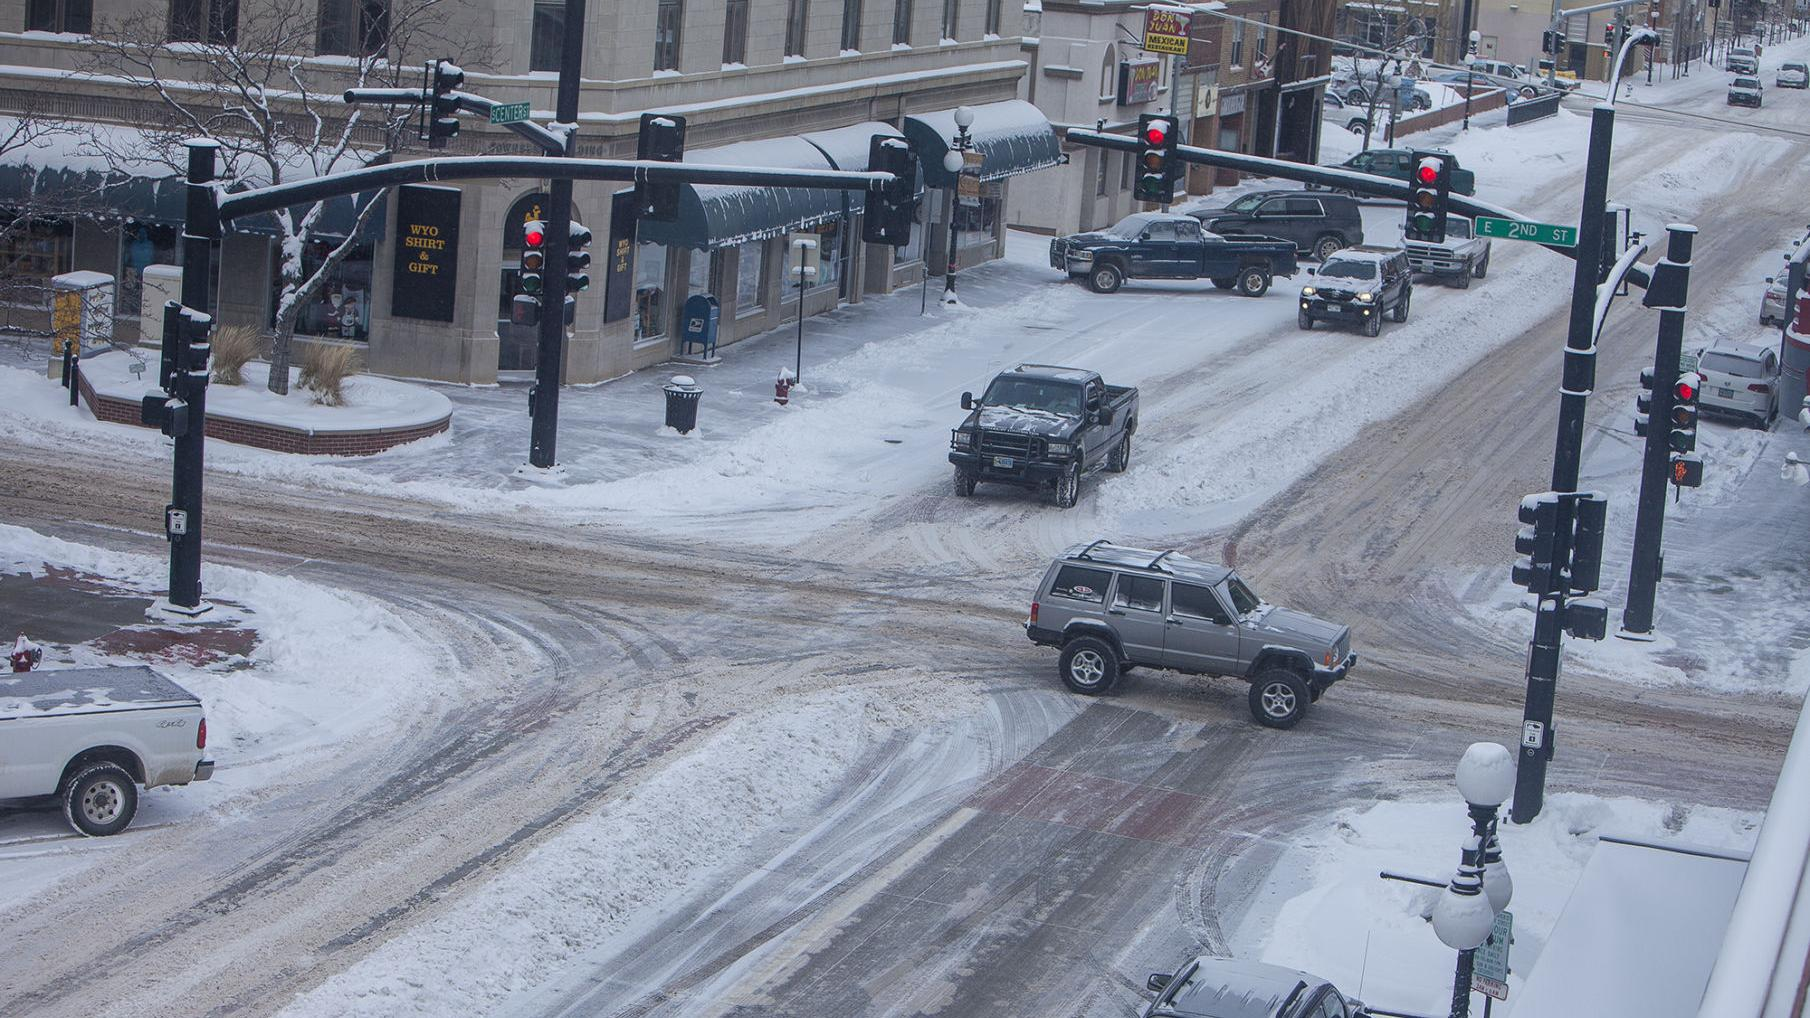 Winter storm hits Casper; police ask drivers to exchange information after an accident unless there are injuries